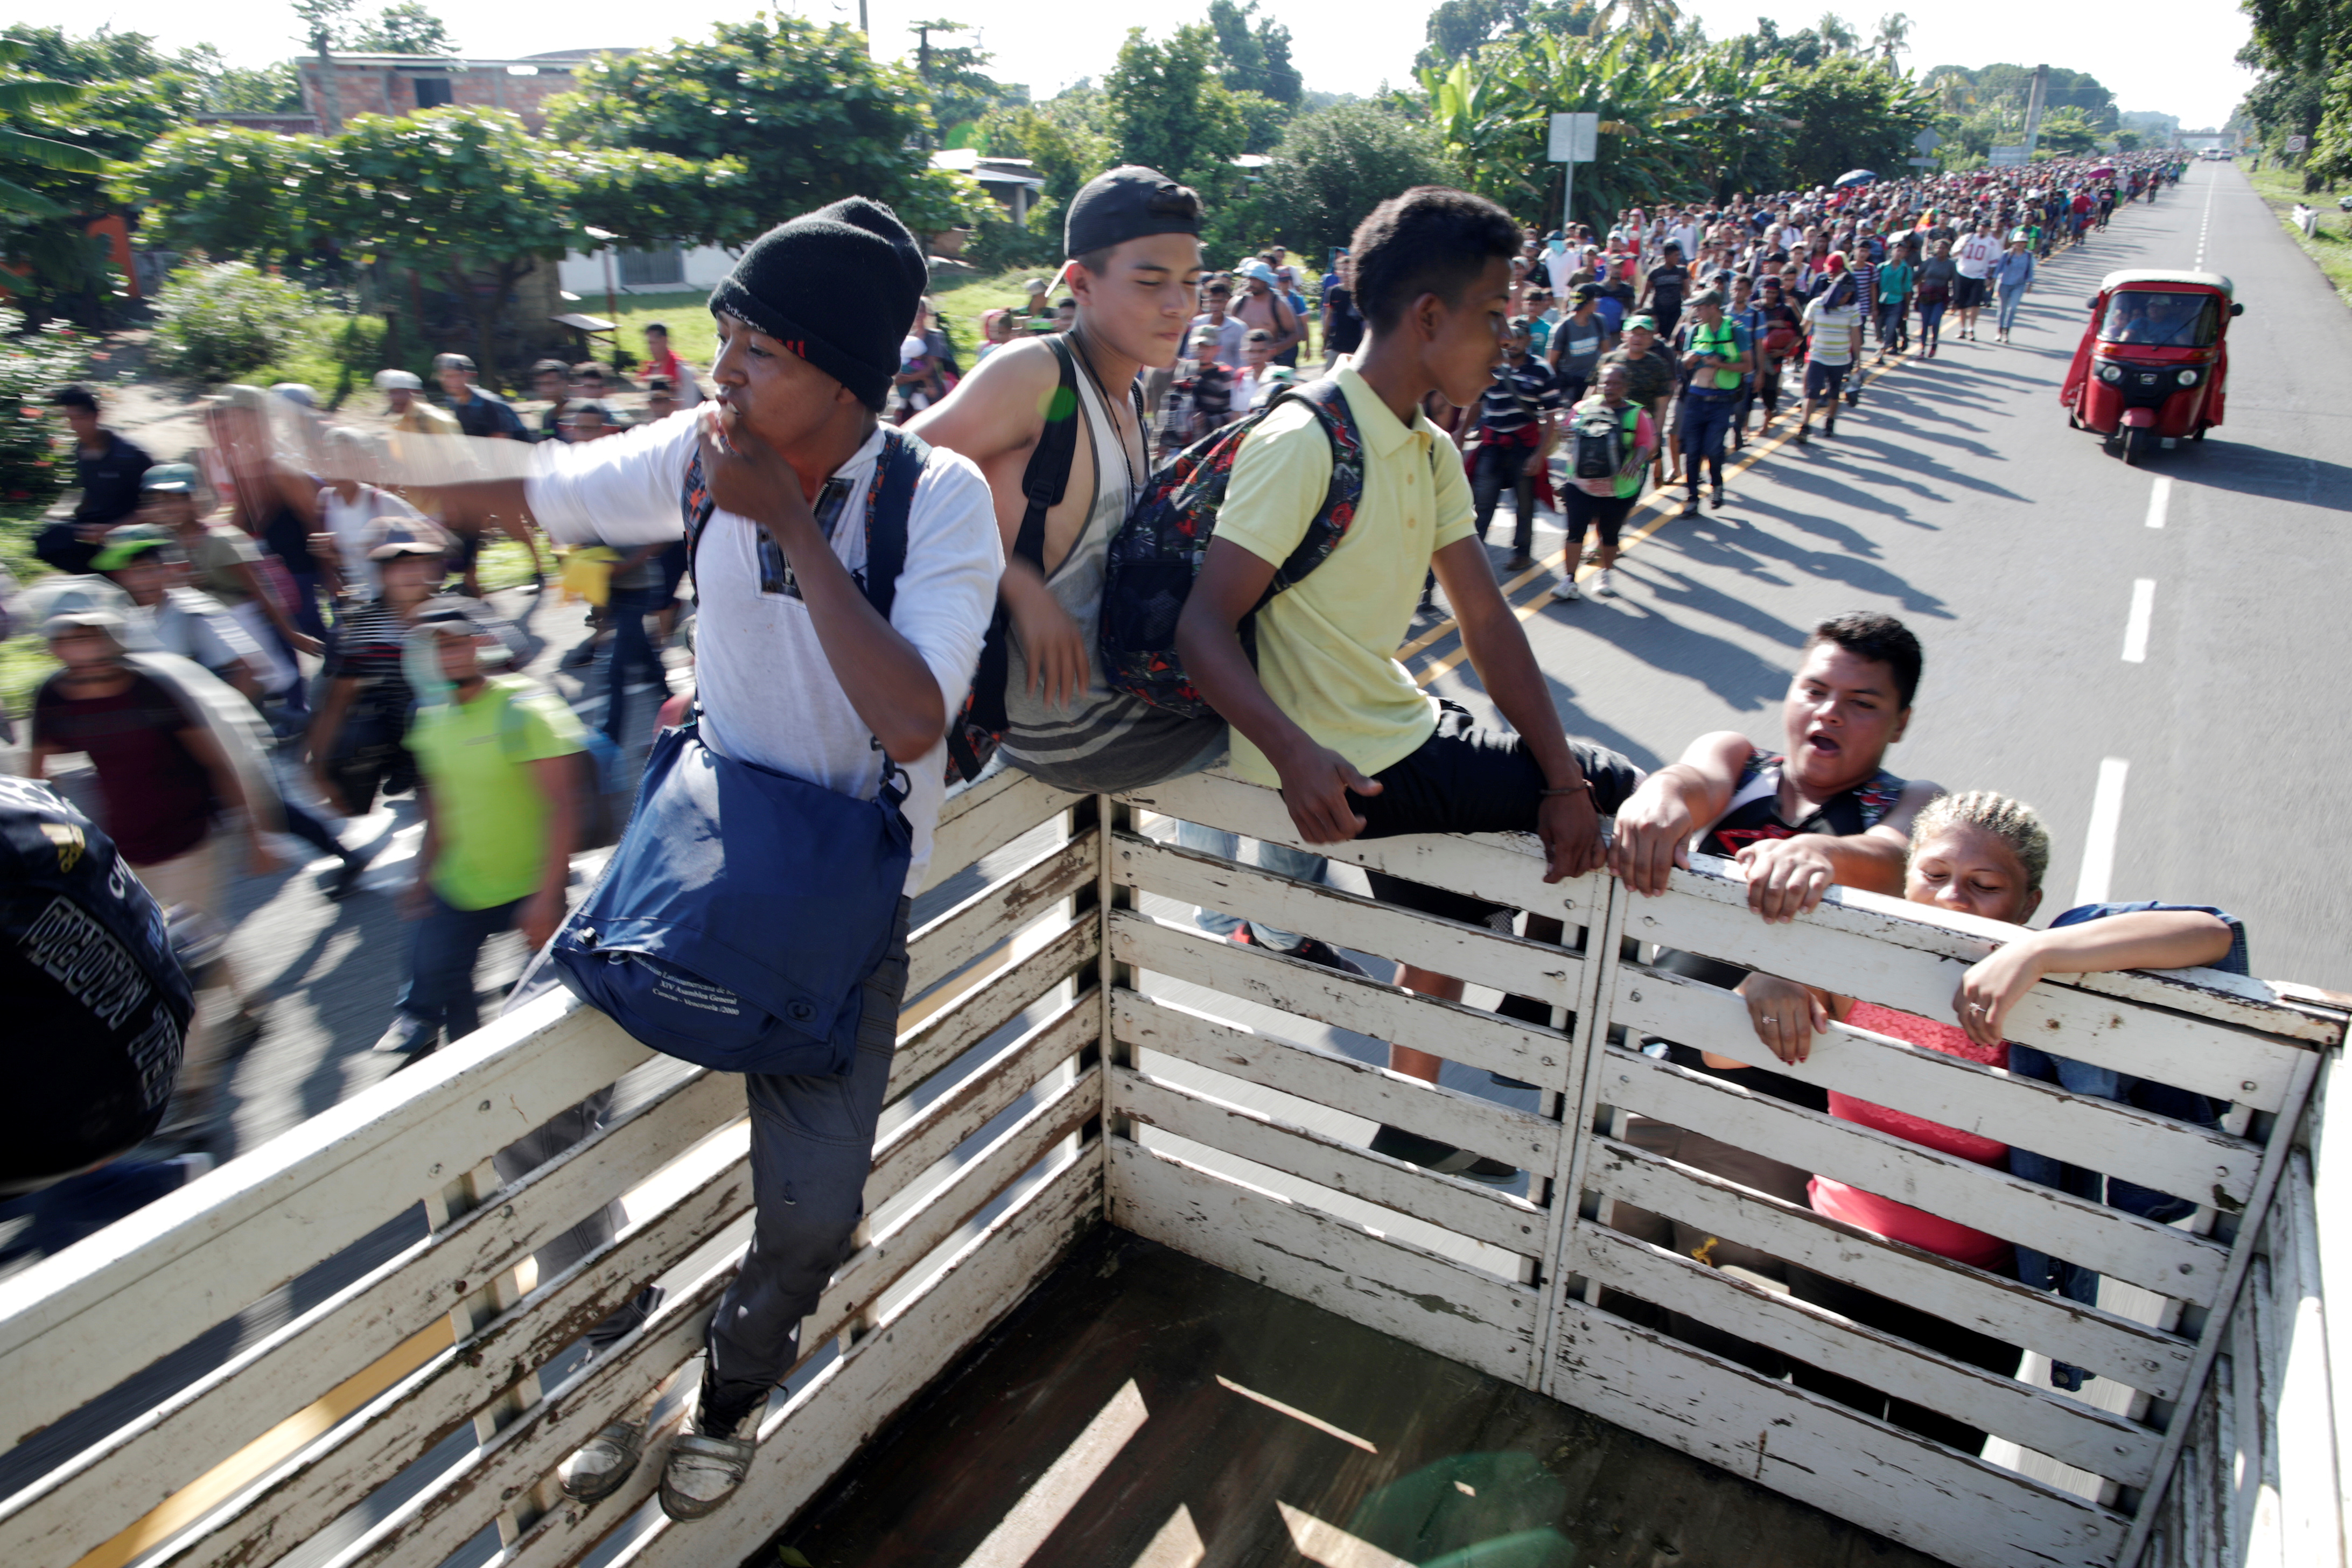 Central American migrants hitchhike along the highway near the border with Guatemala, as they continue their journey trying to reach the U.S., in Tapachula, Mexico October 21, 2018. REUTERS/Ueslei Marcelino